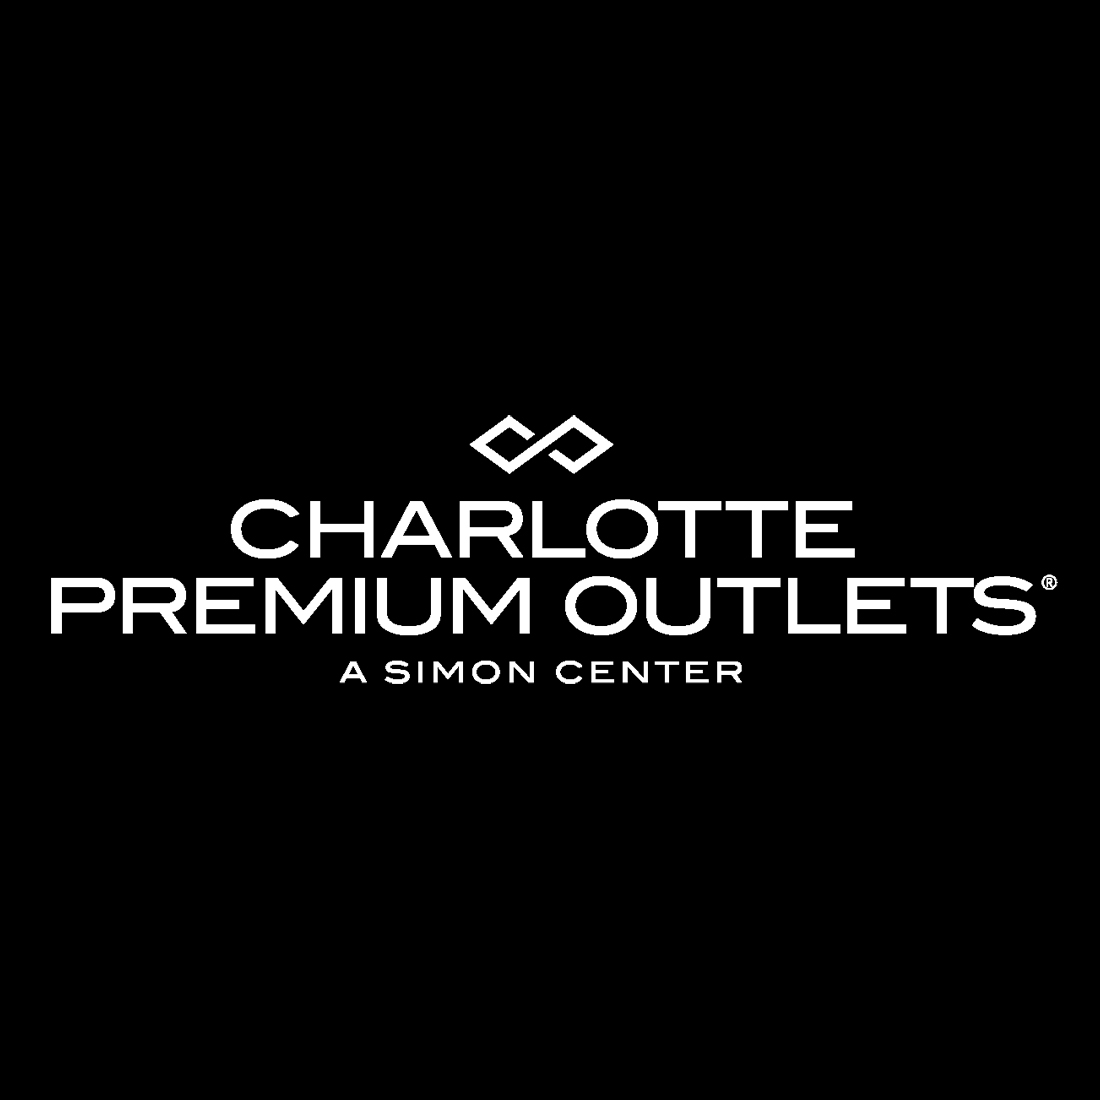 Charlotte Premium Outlets 5404 New Fashion Way Charlotte